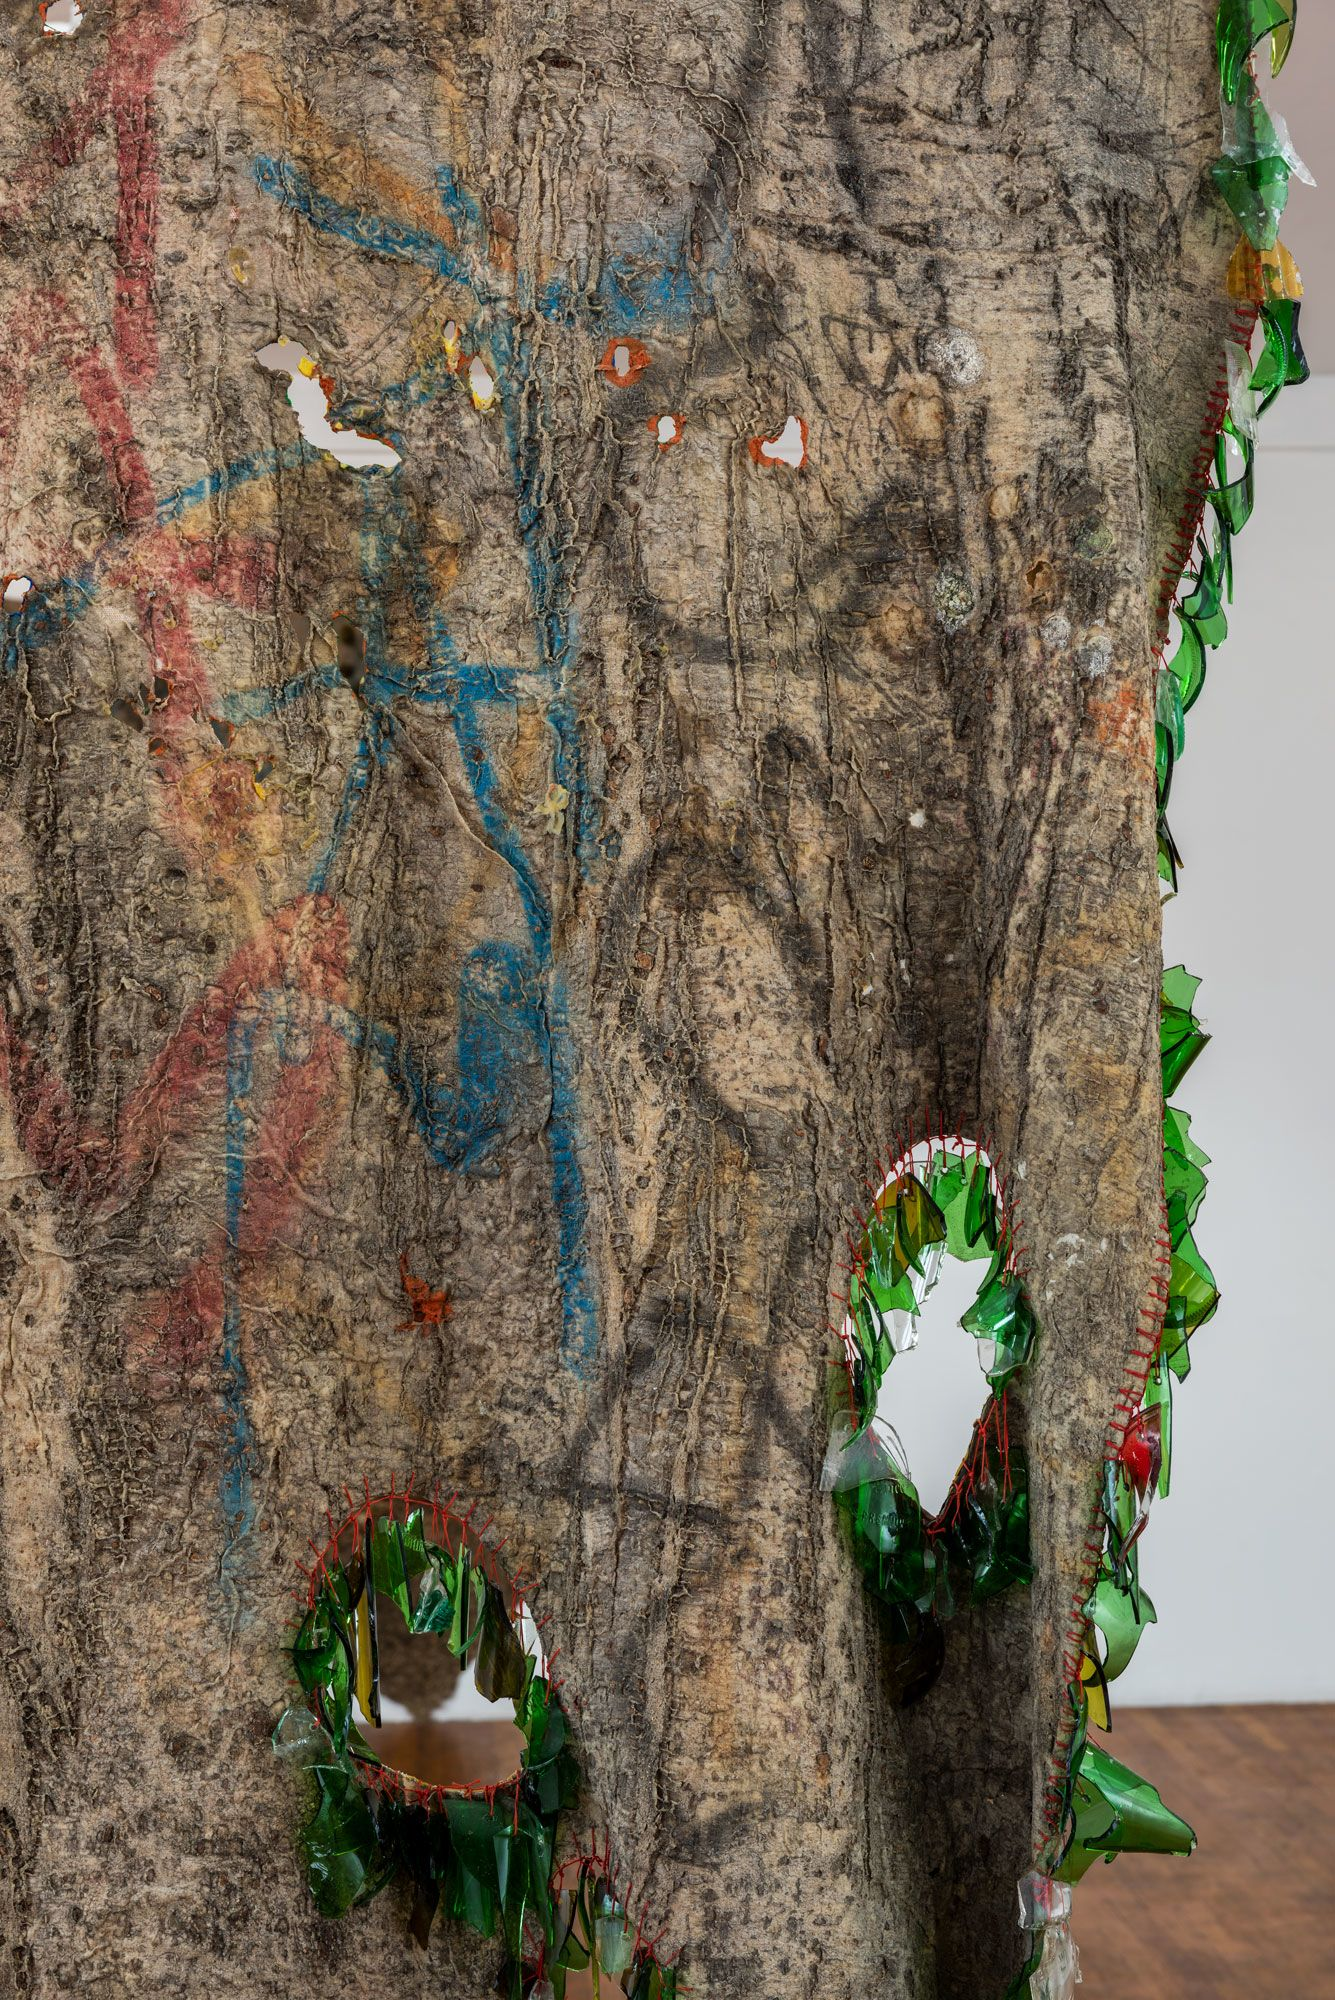 El Ruido Del Bosque Sin Hojas/The Sound Of The Forest Without Leaves, detail